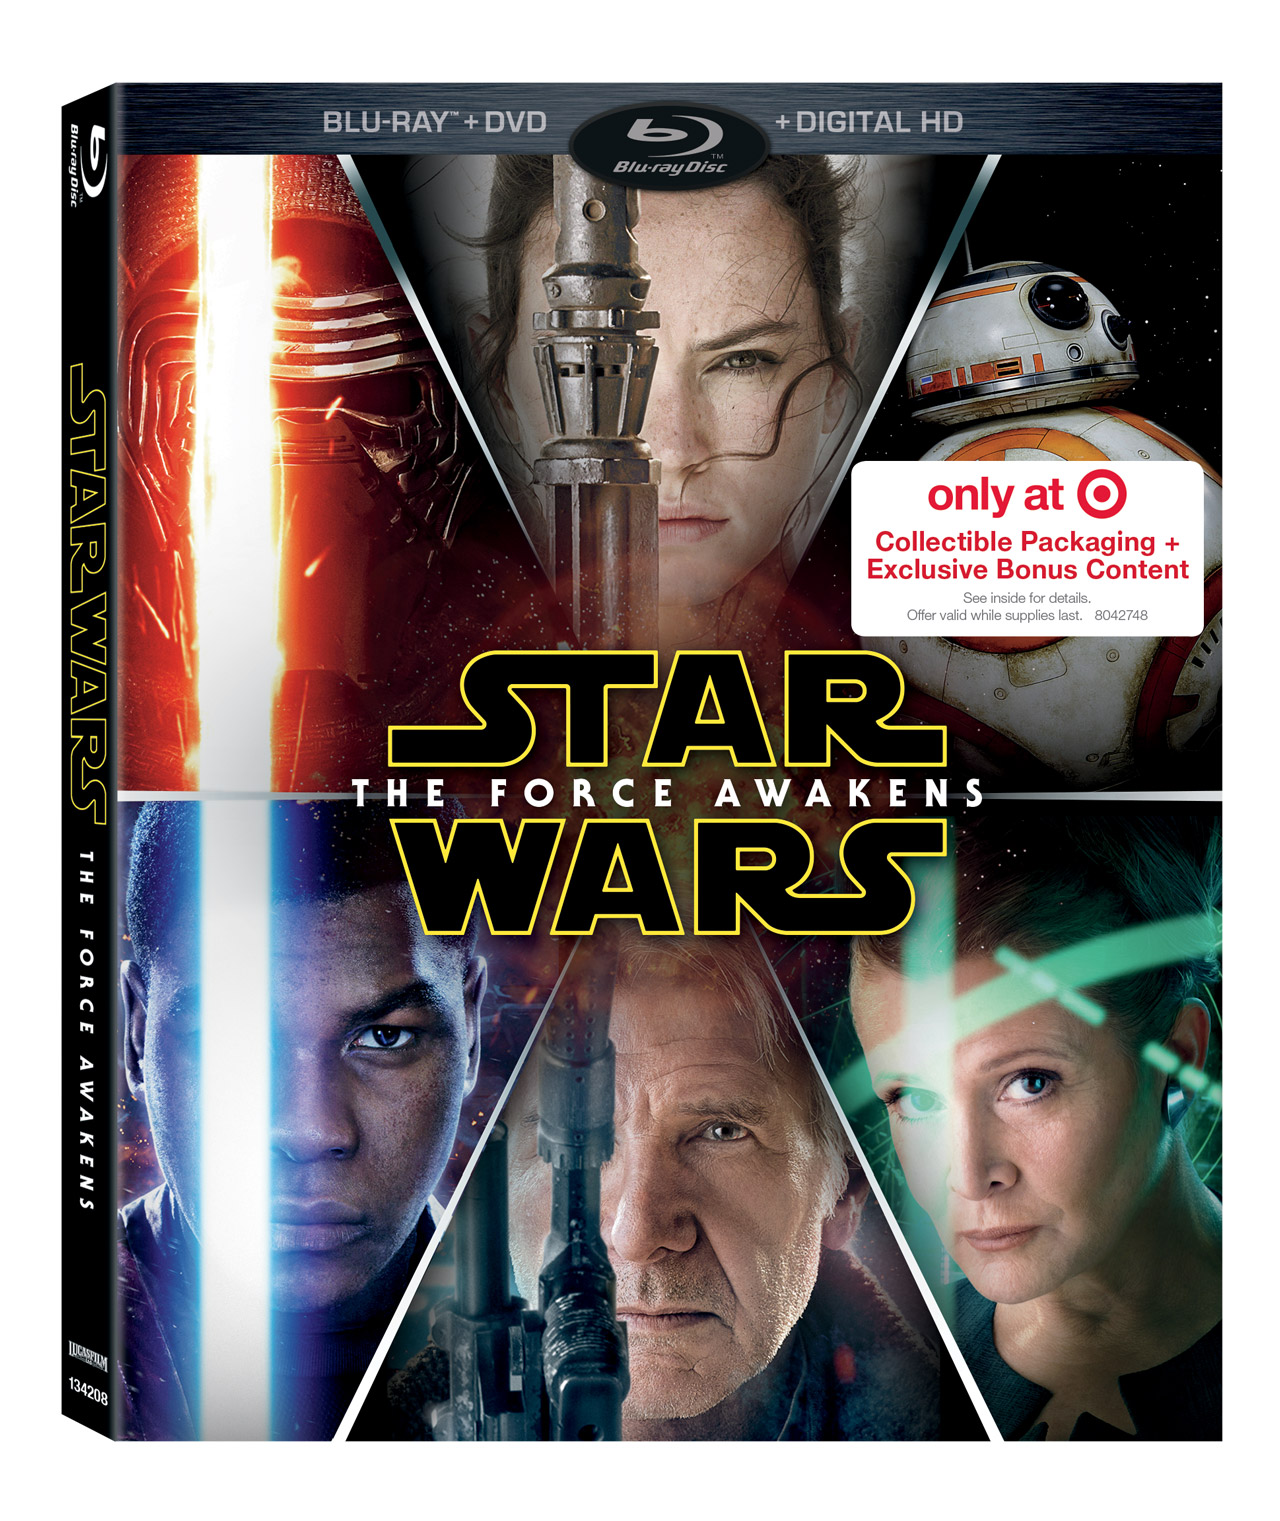 Star Wars The Force Awakens es to Blu ray DVD and Digital